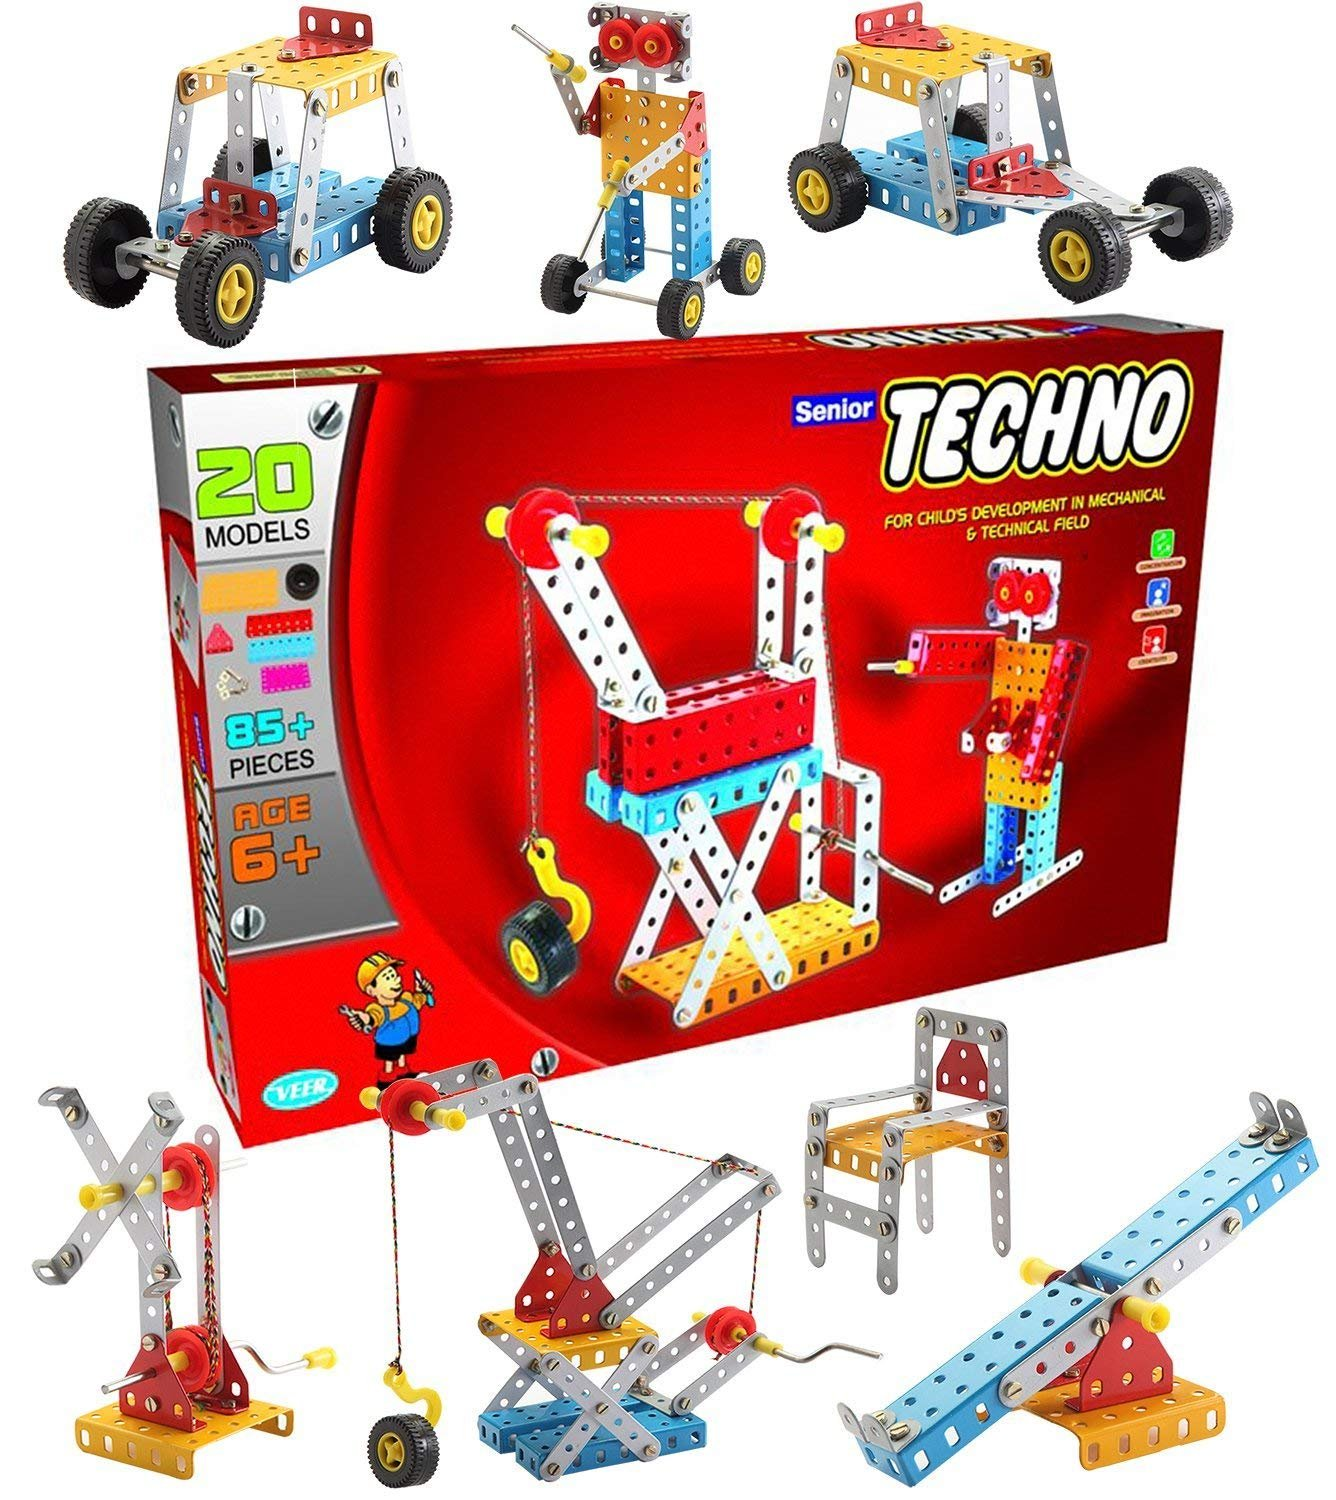 SENIOR TECHNO ,Construction Toys Mechanical Kit For Kids - (Age 6+) with guide book